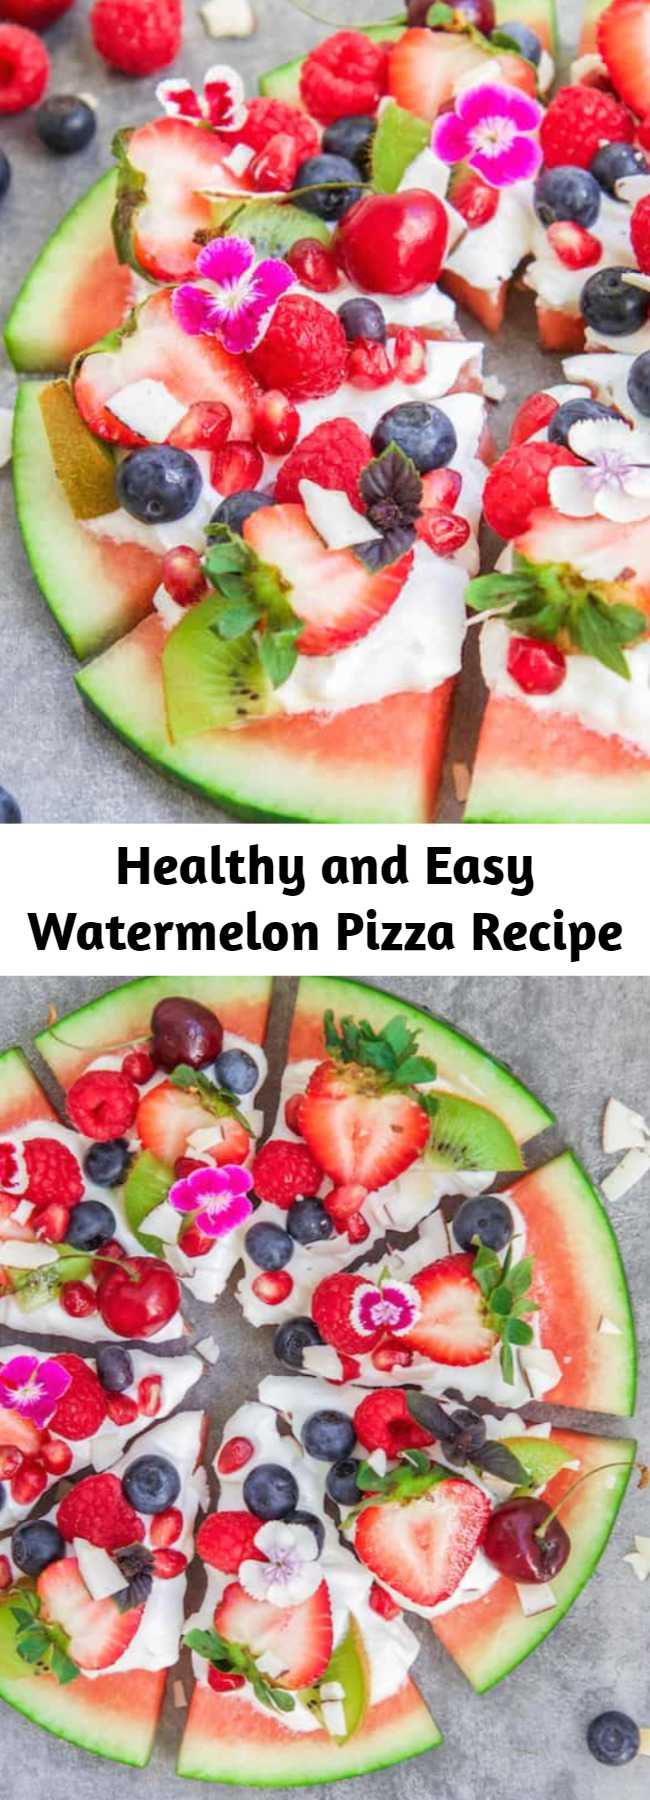 Healthy and Easy Watermelon Pizza Recipe - This watermelon pizza is a fun little treat that everyone can enjoy! It's healthy and easy to make! Refreshing, delicious, and only takes 10 minutes to make.